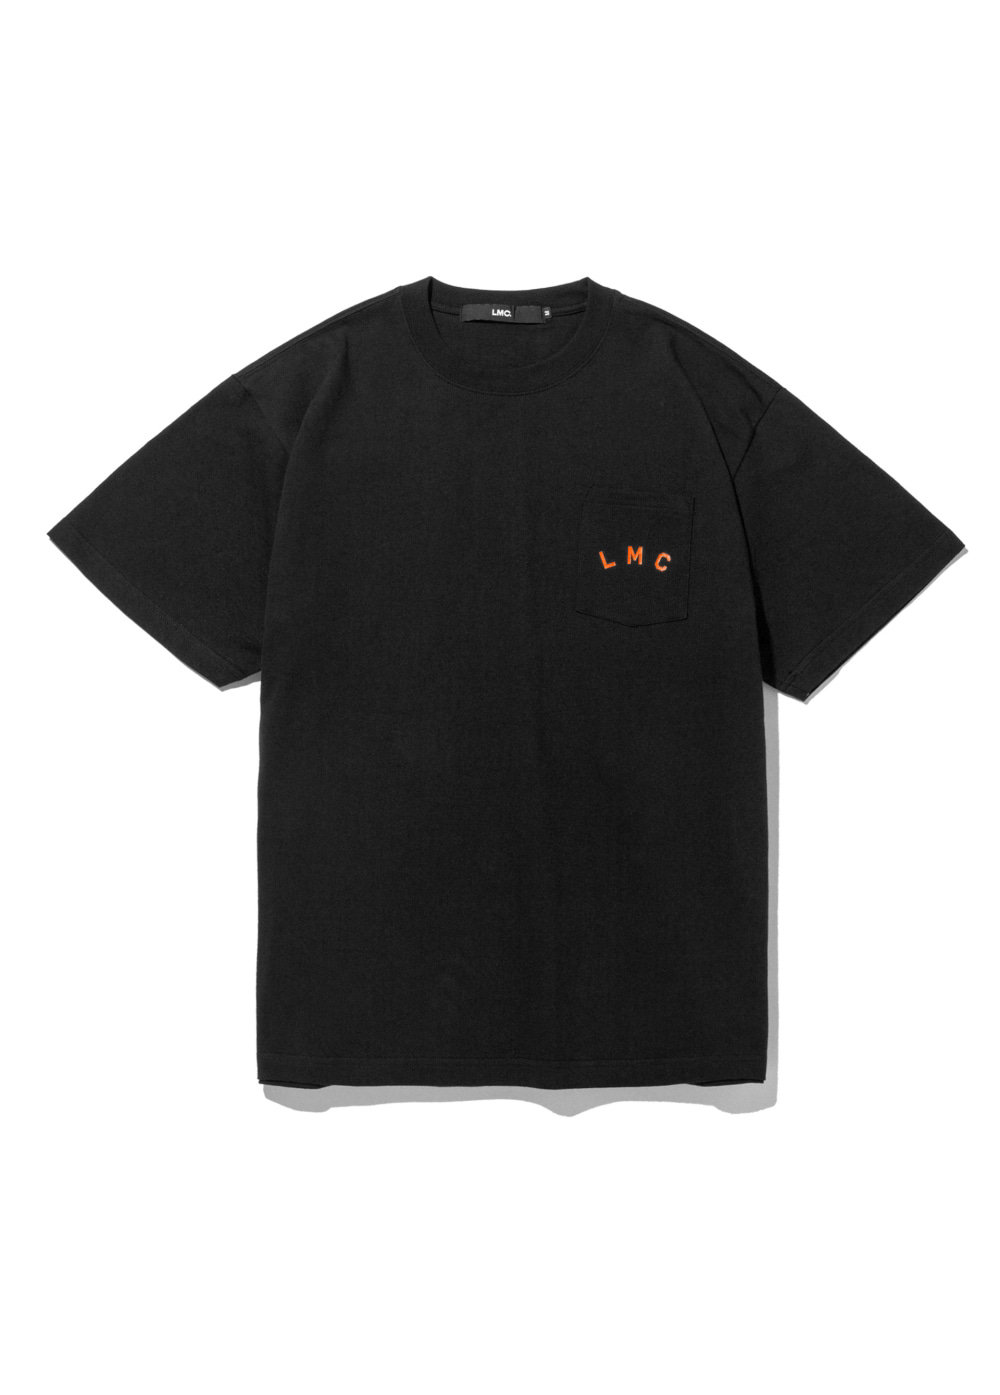 LMC RED LABEL POCKET TEE black